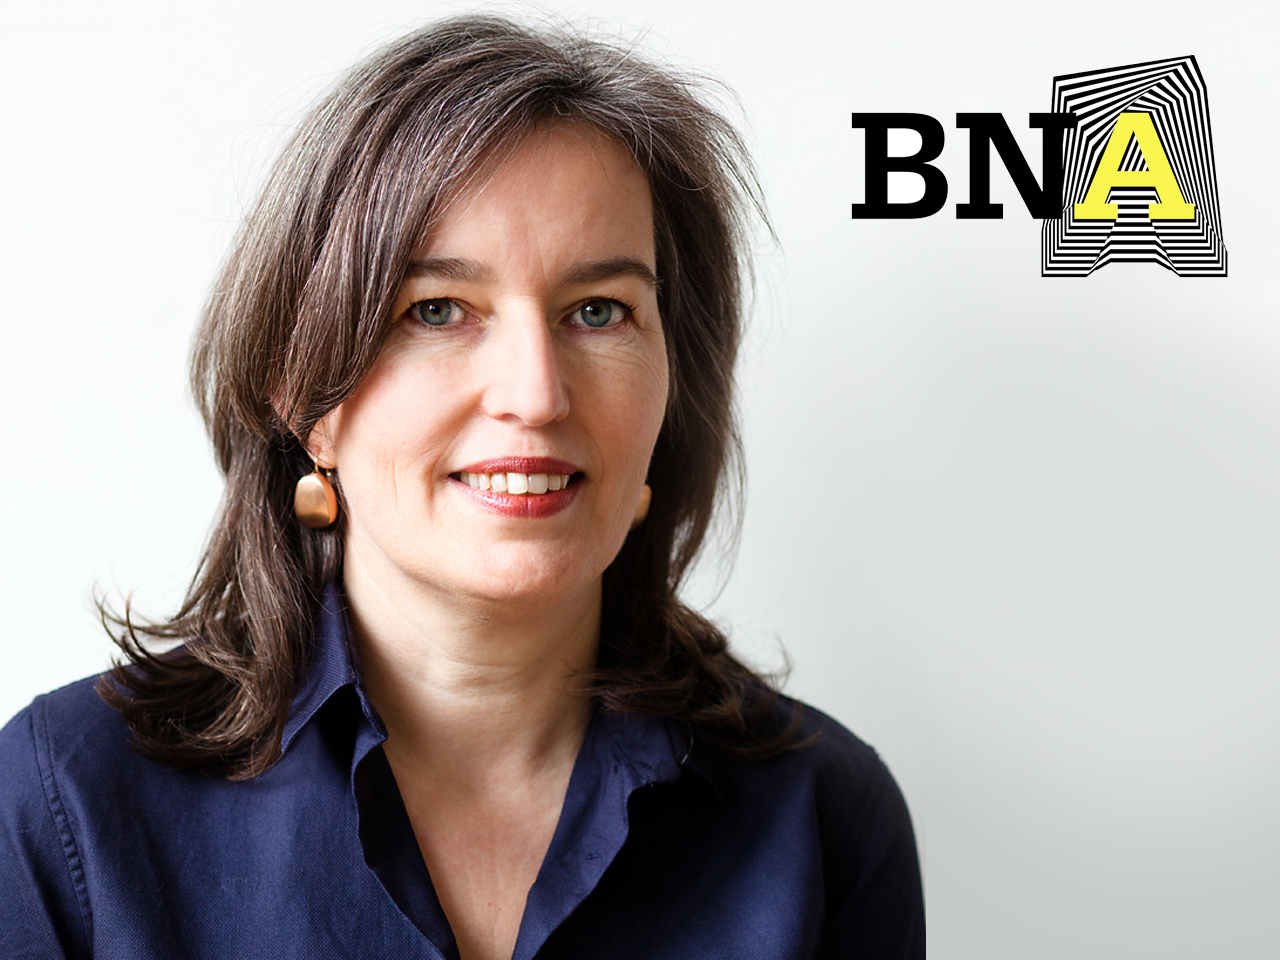 Nathalie de Vries confirmed as chair of the Royal Institute of Dutch Architects (BNA)